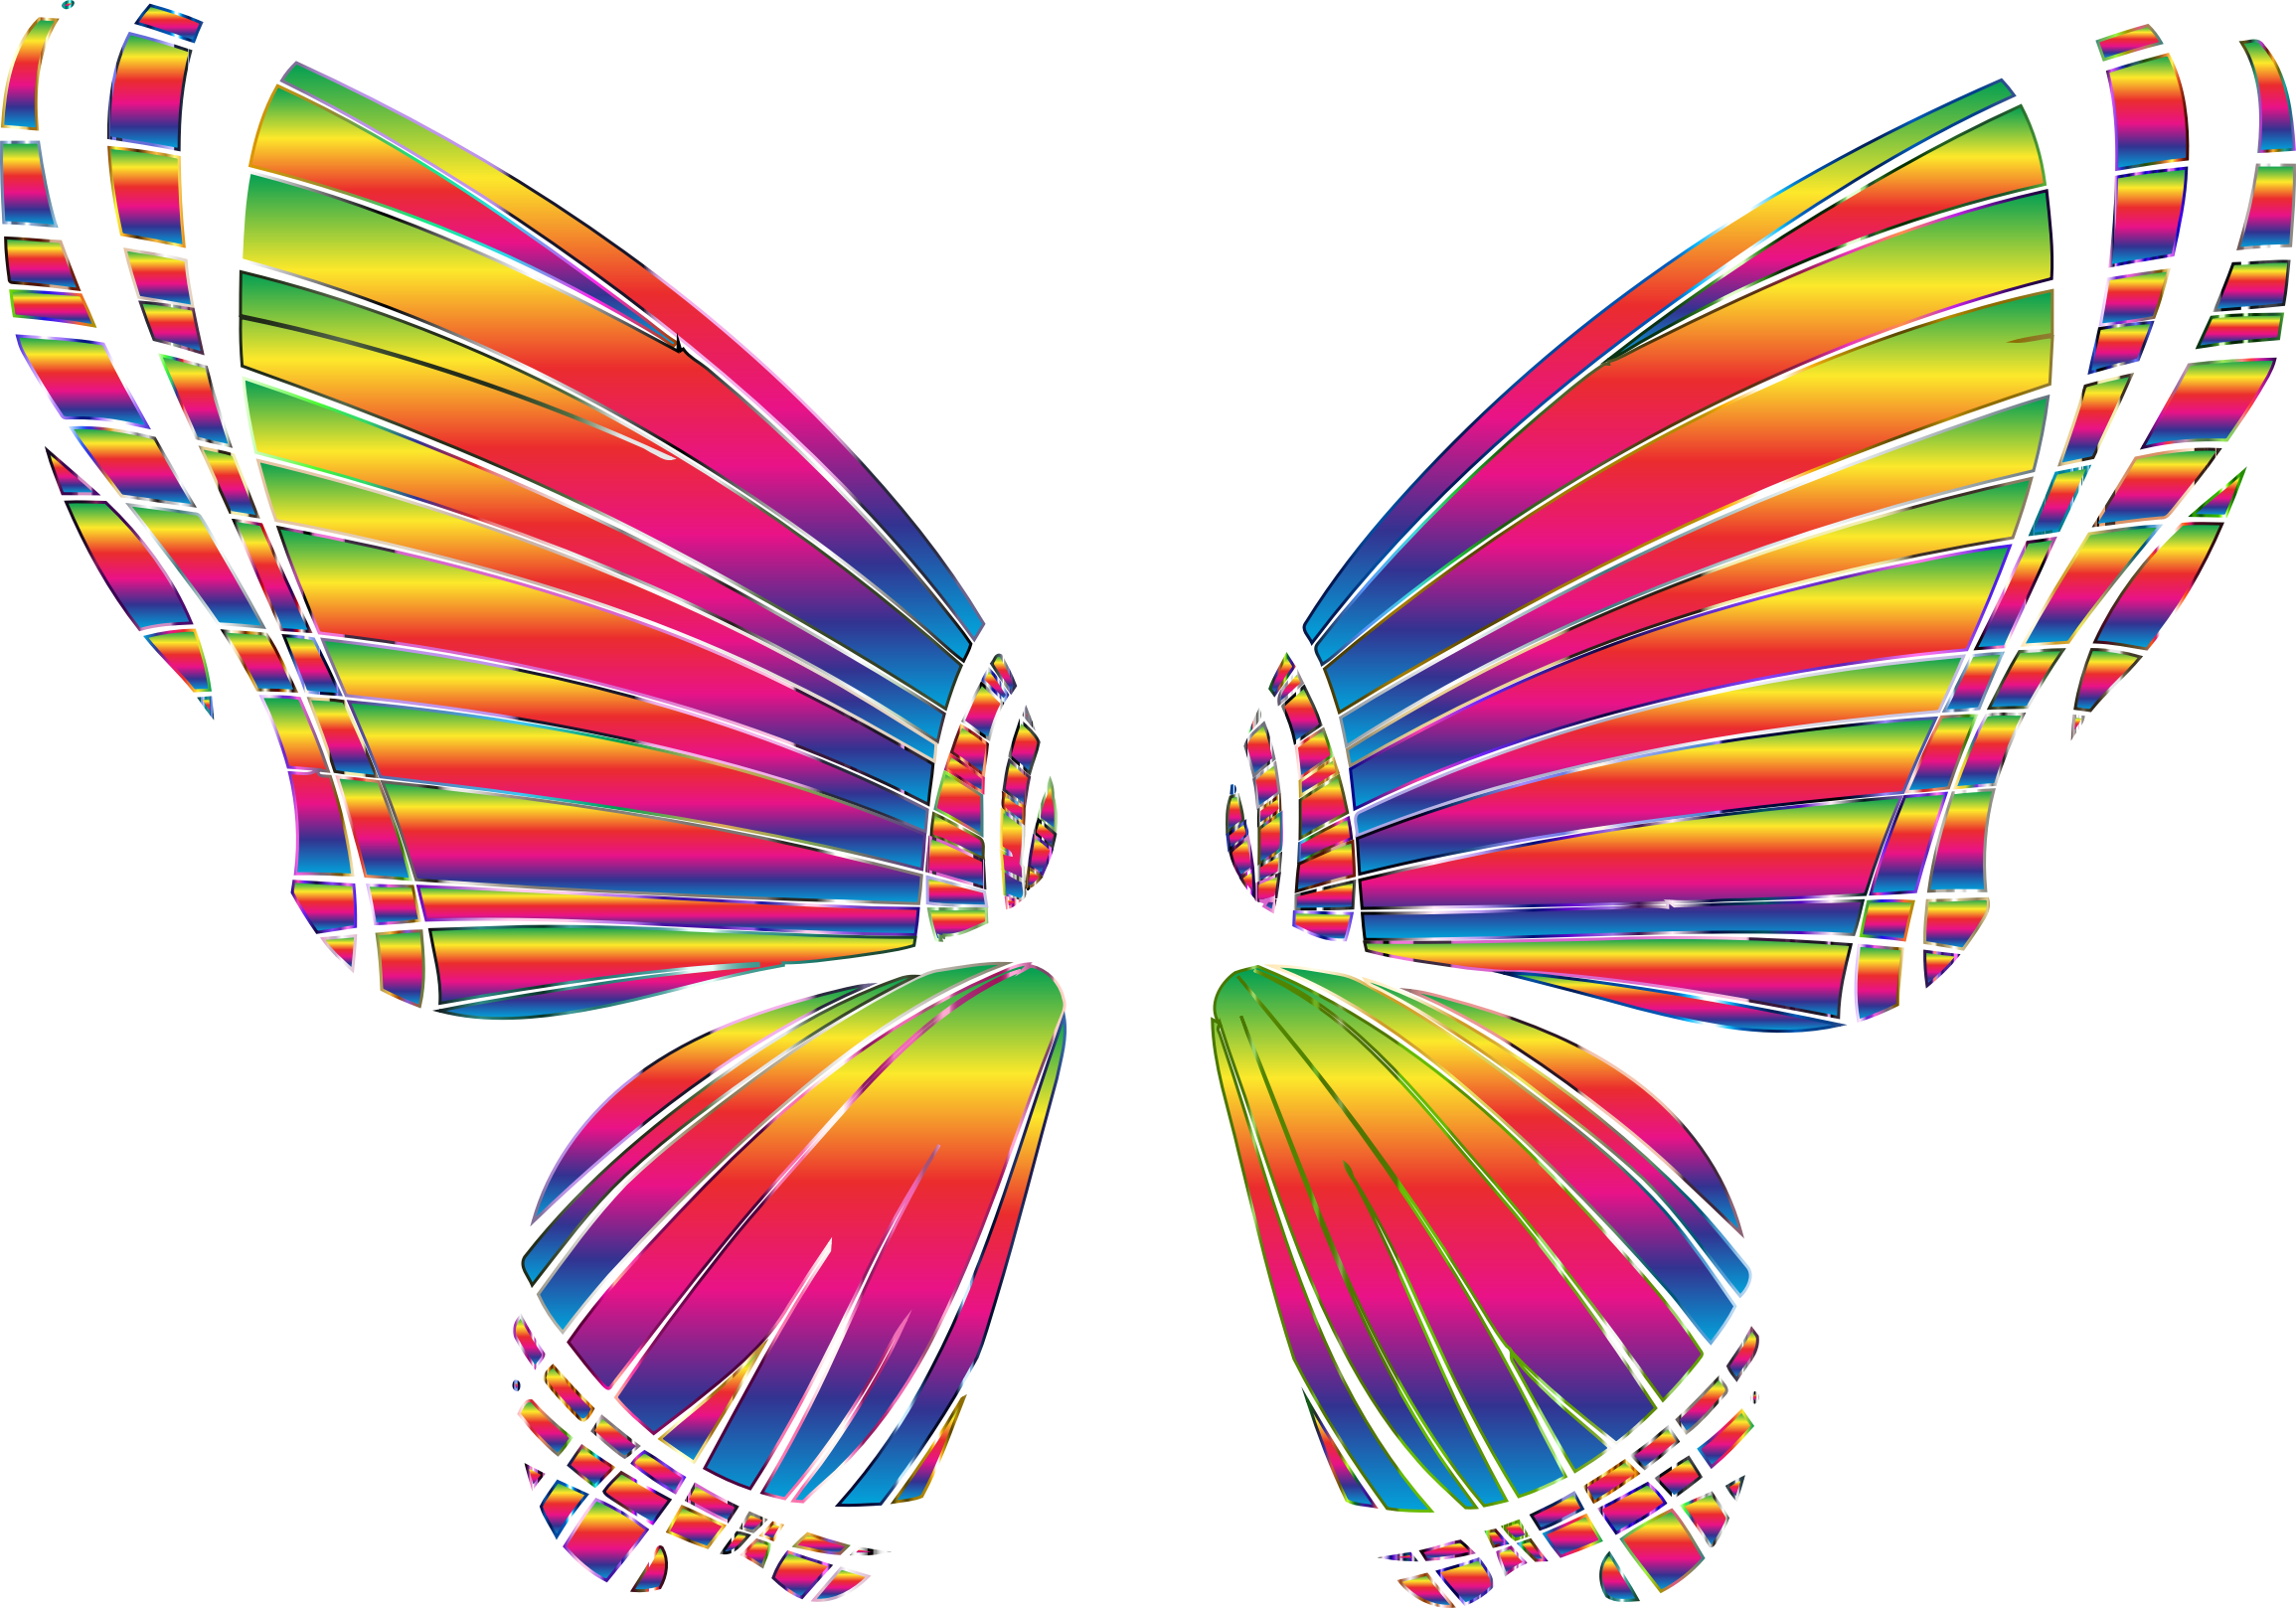 RGB Butterfly Silhouette 10 8 No Background by GDJ